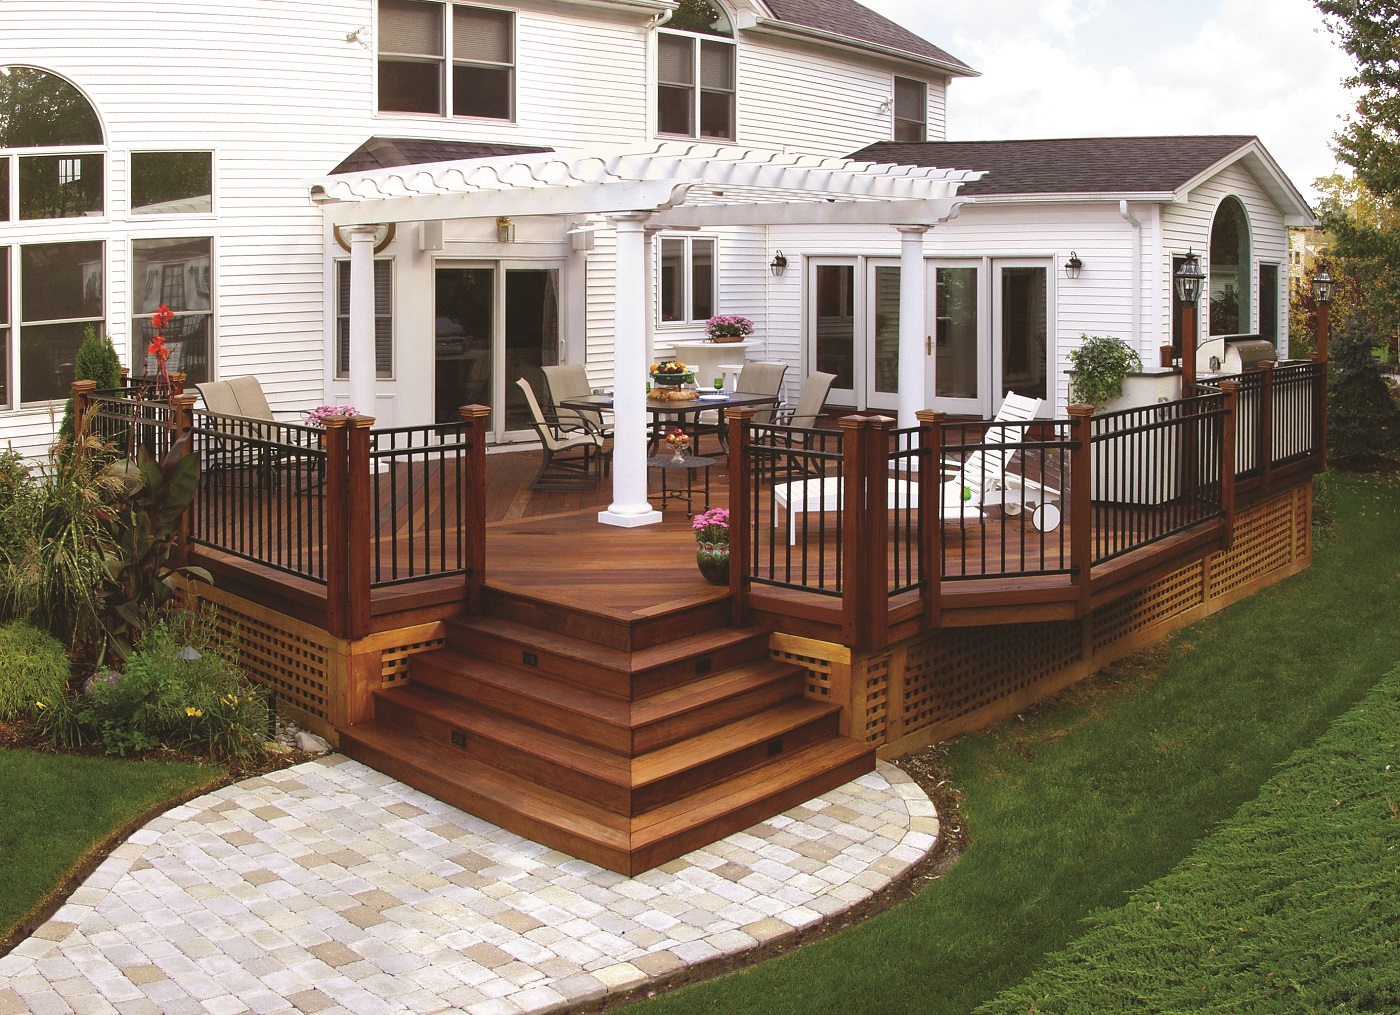 Wooden-freestanding-deck-with-pergola-and-paver-patio-below